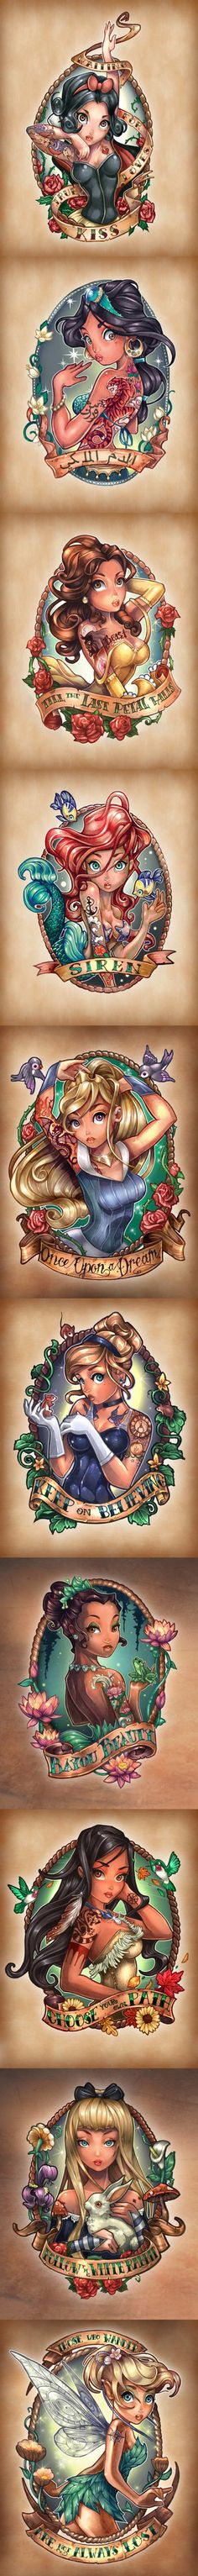 8 Disney Princesses as Tattooed Pinup Girls! ( + Alice and Tinkerbell )